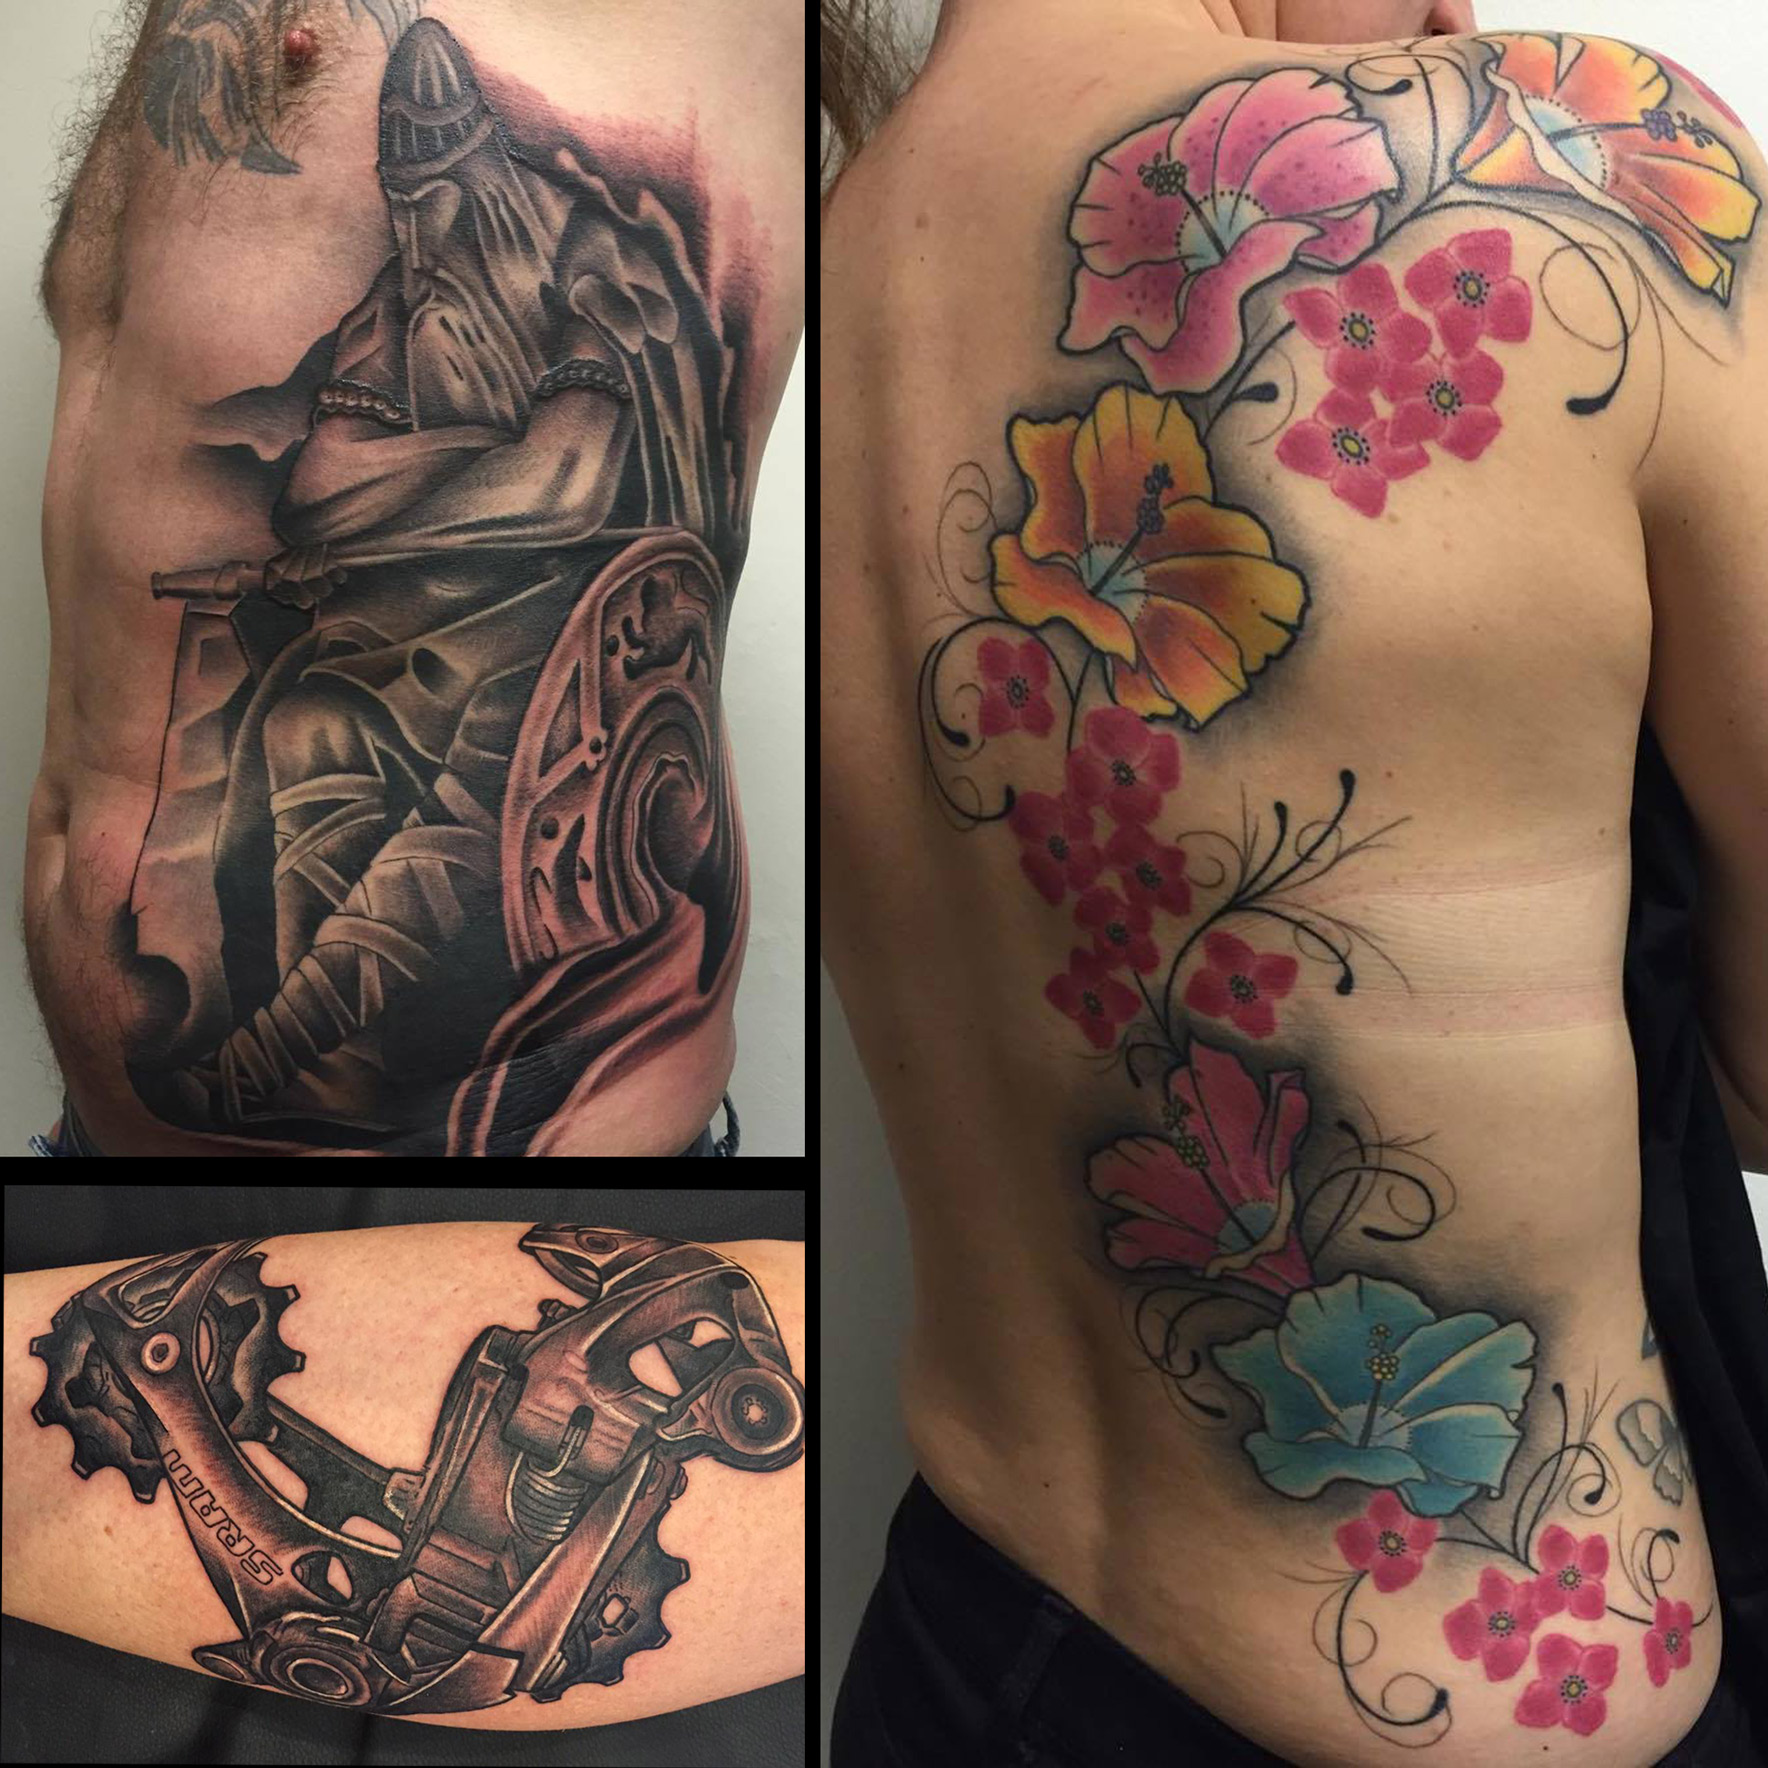 Skagen Tattoo Morten Friis